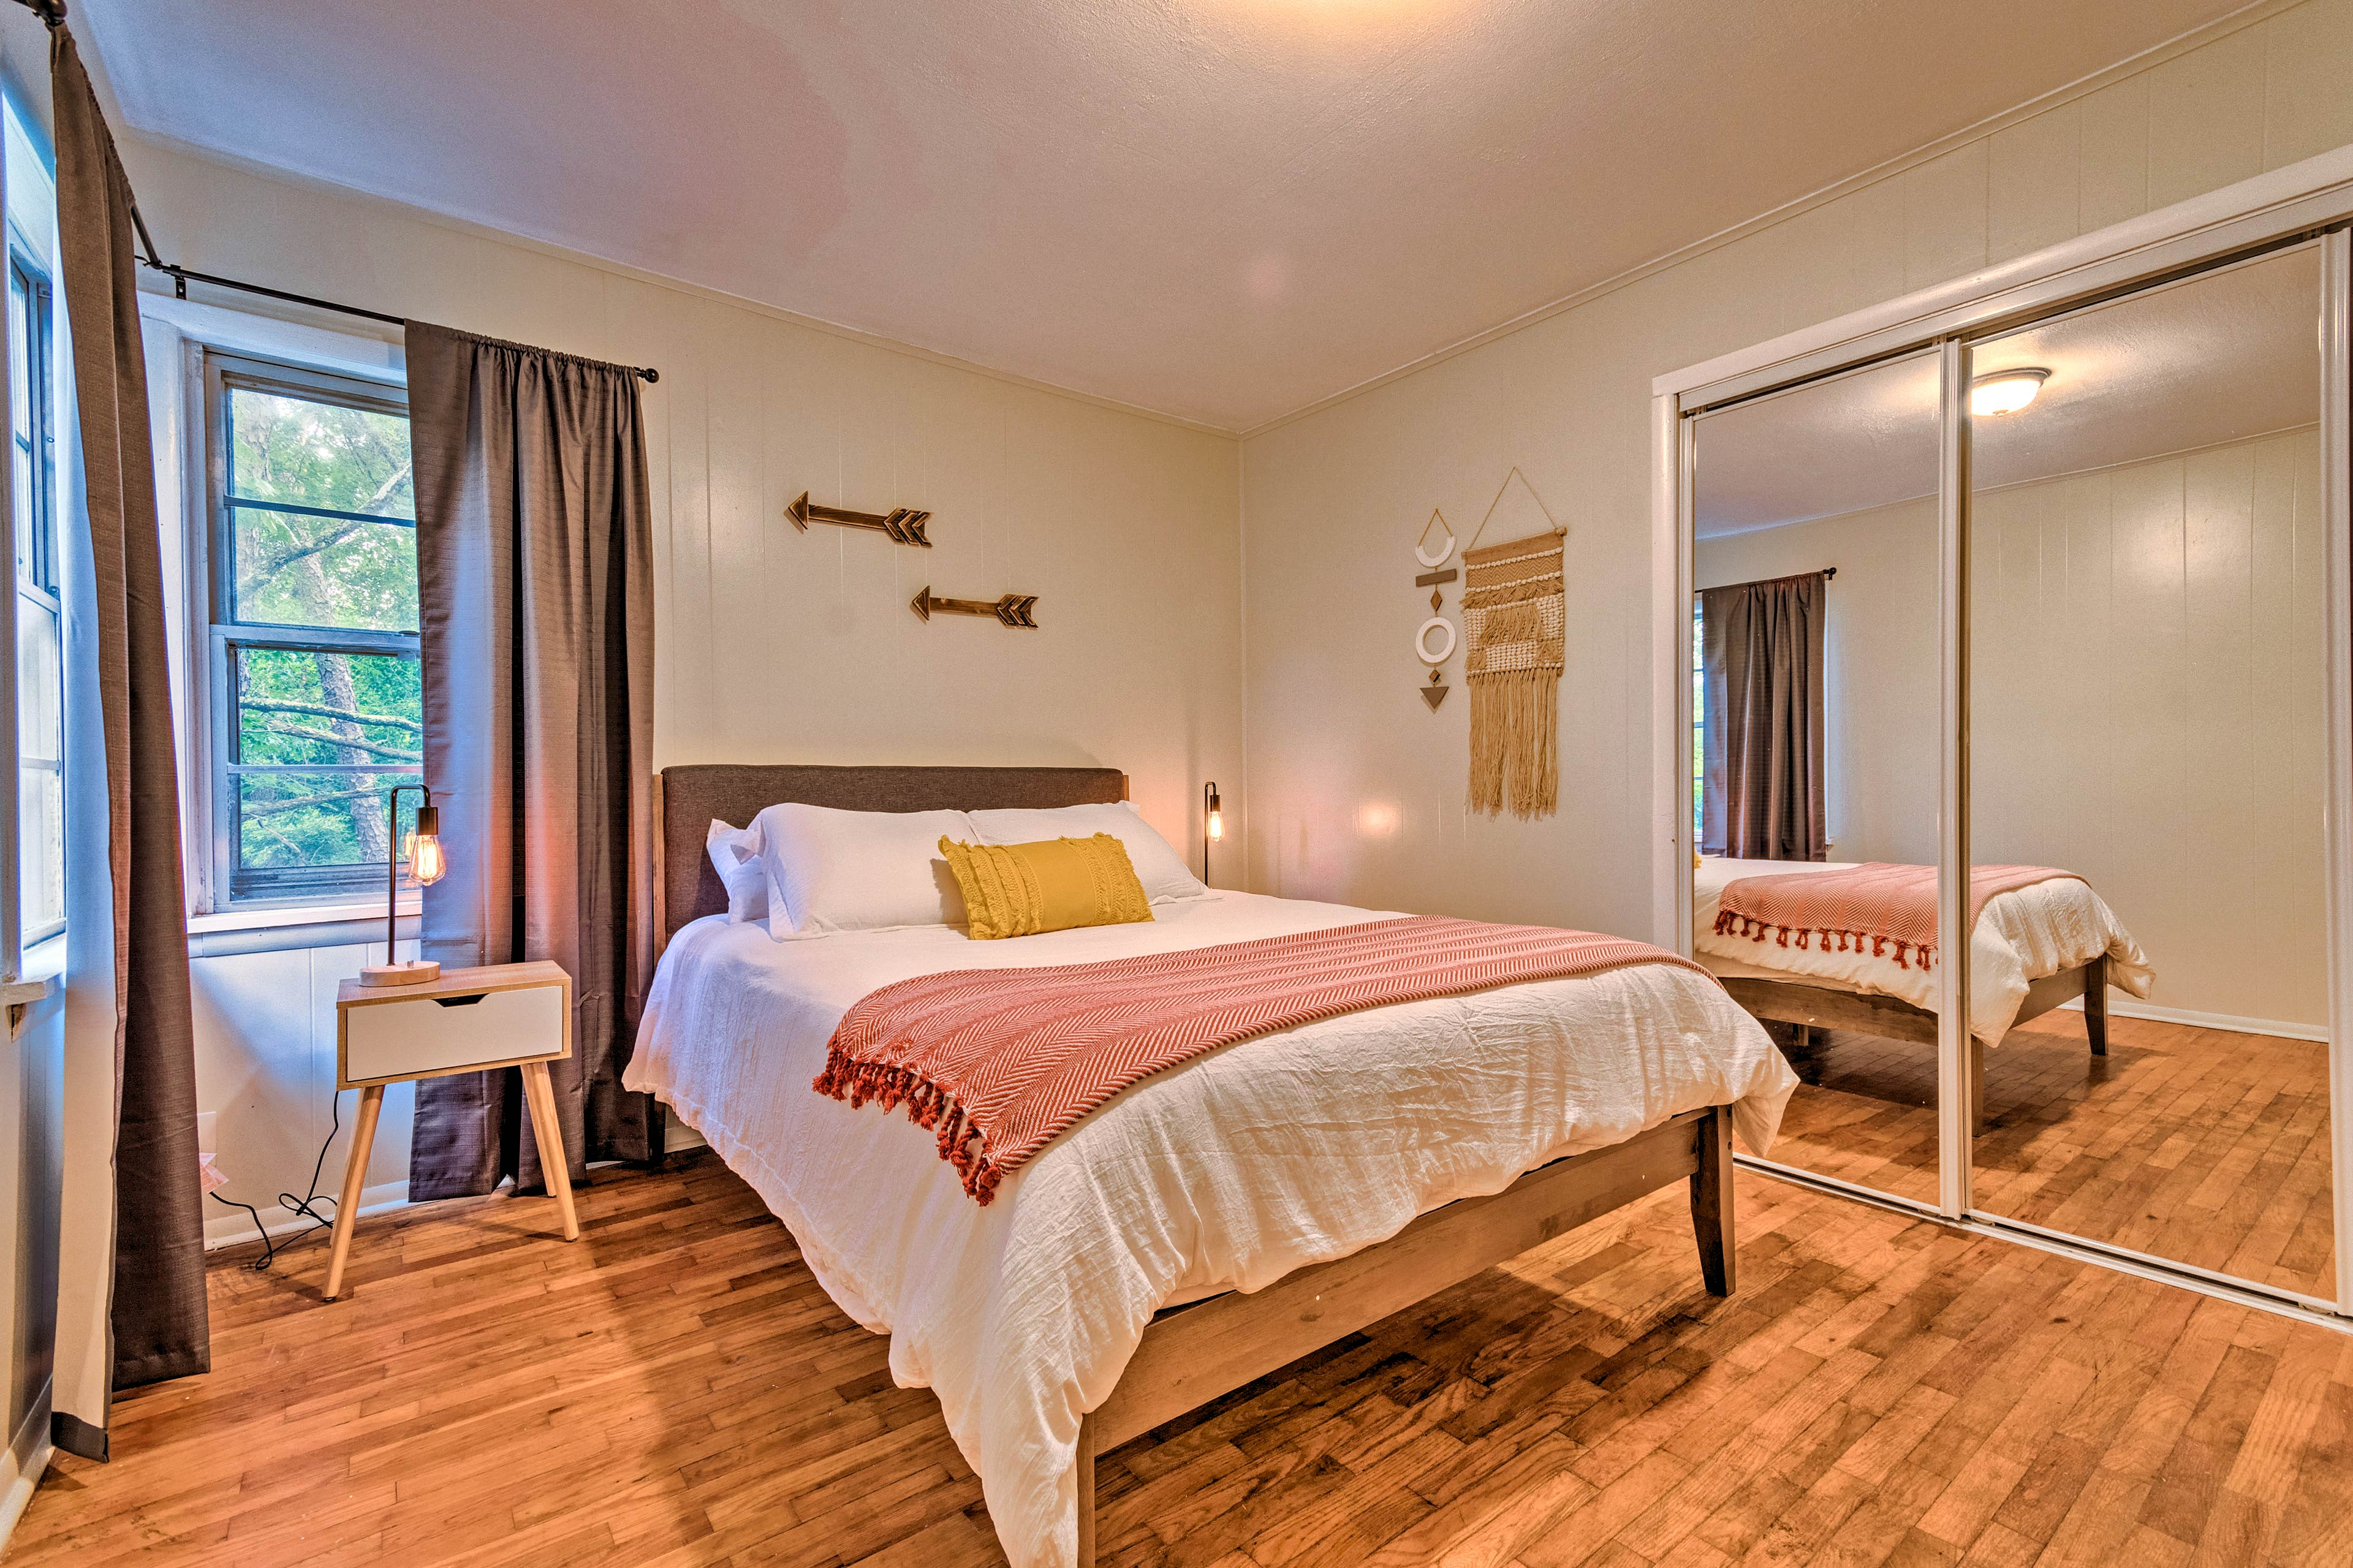 The master bedroom features a queen-sized bed for 2.